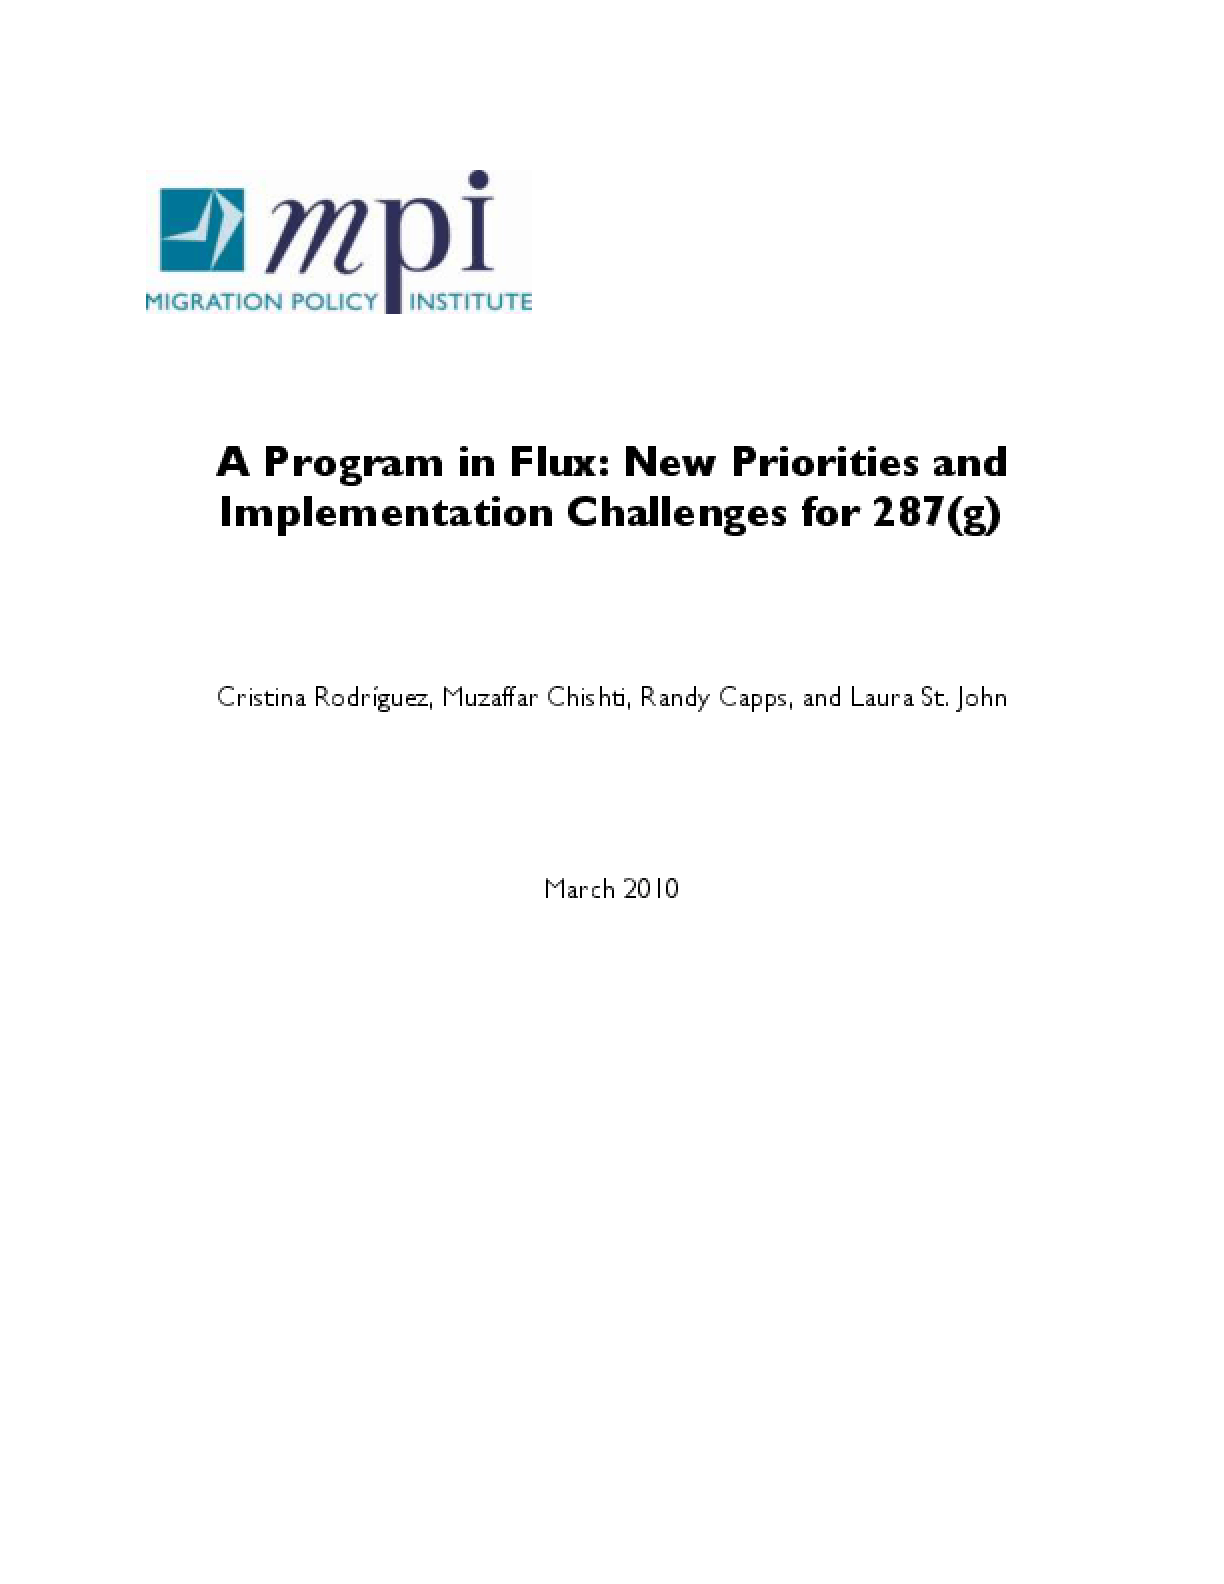 Program in Flux: New Priorities and Implementation Challenges for 287(g)